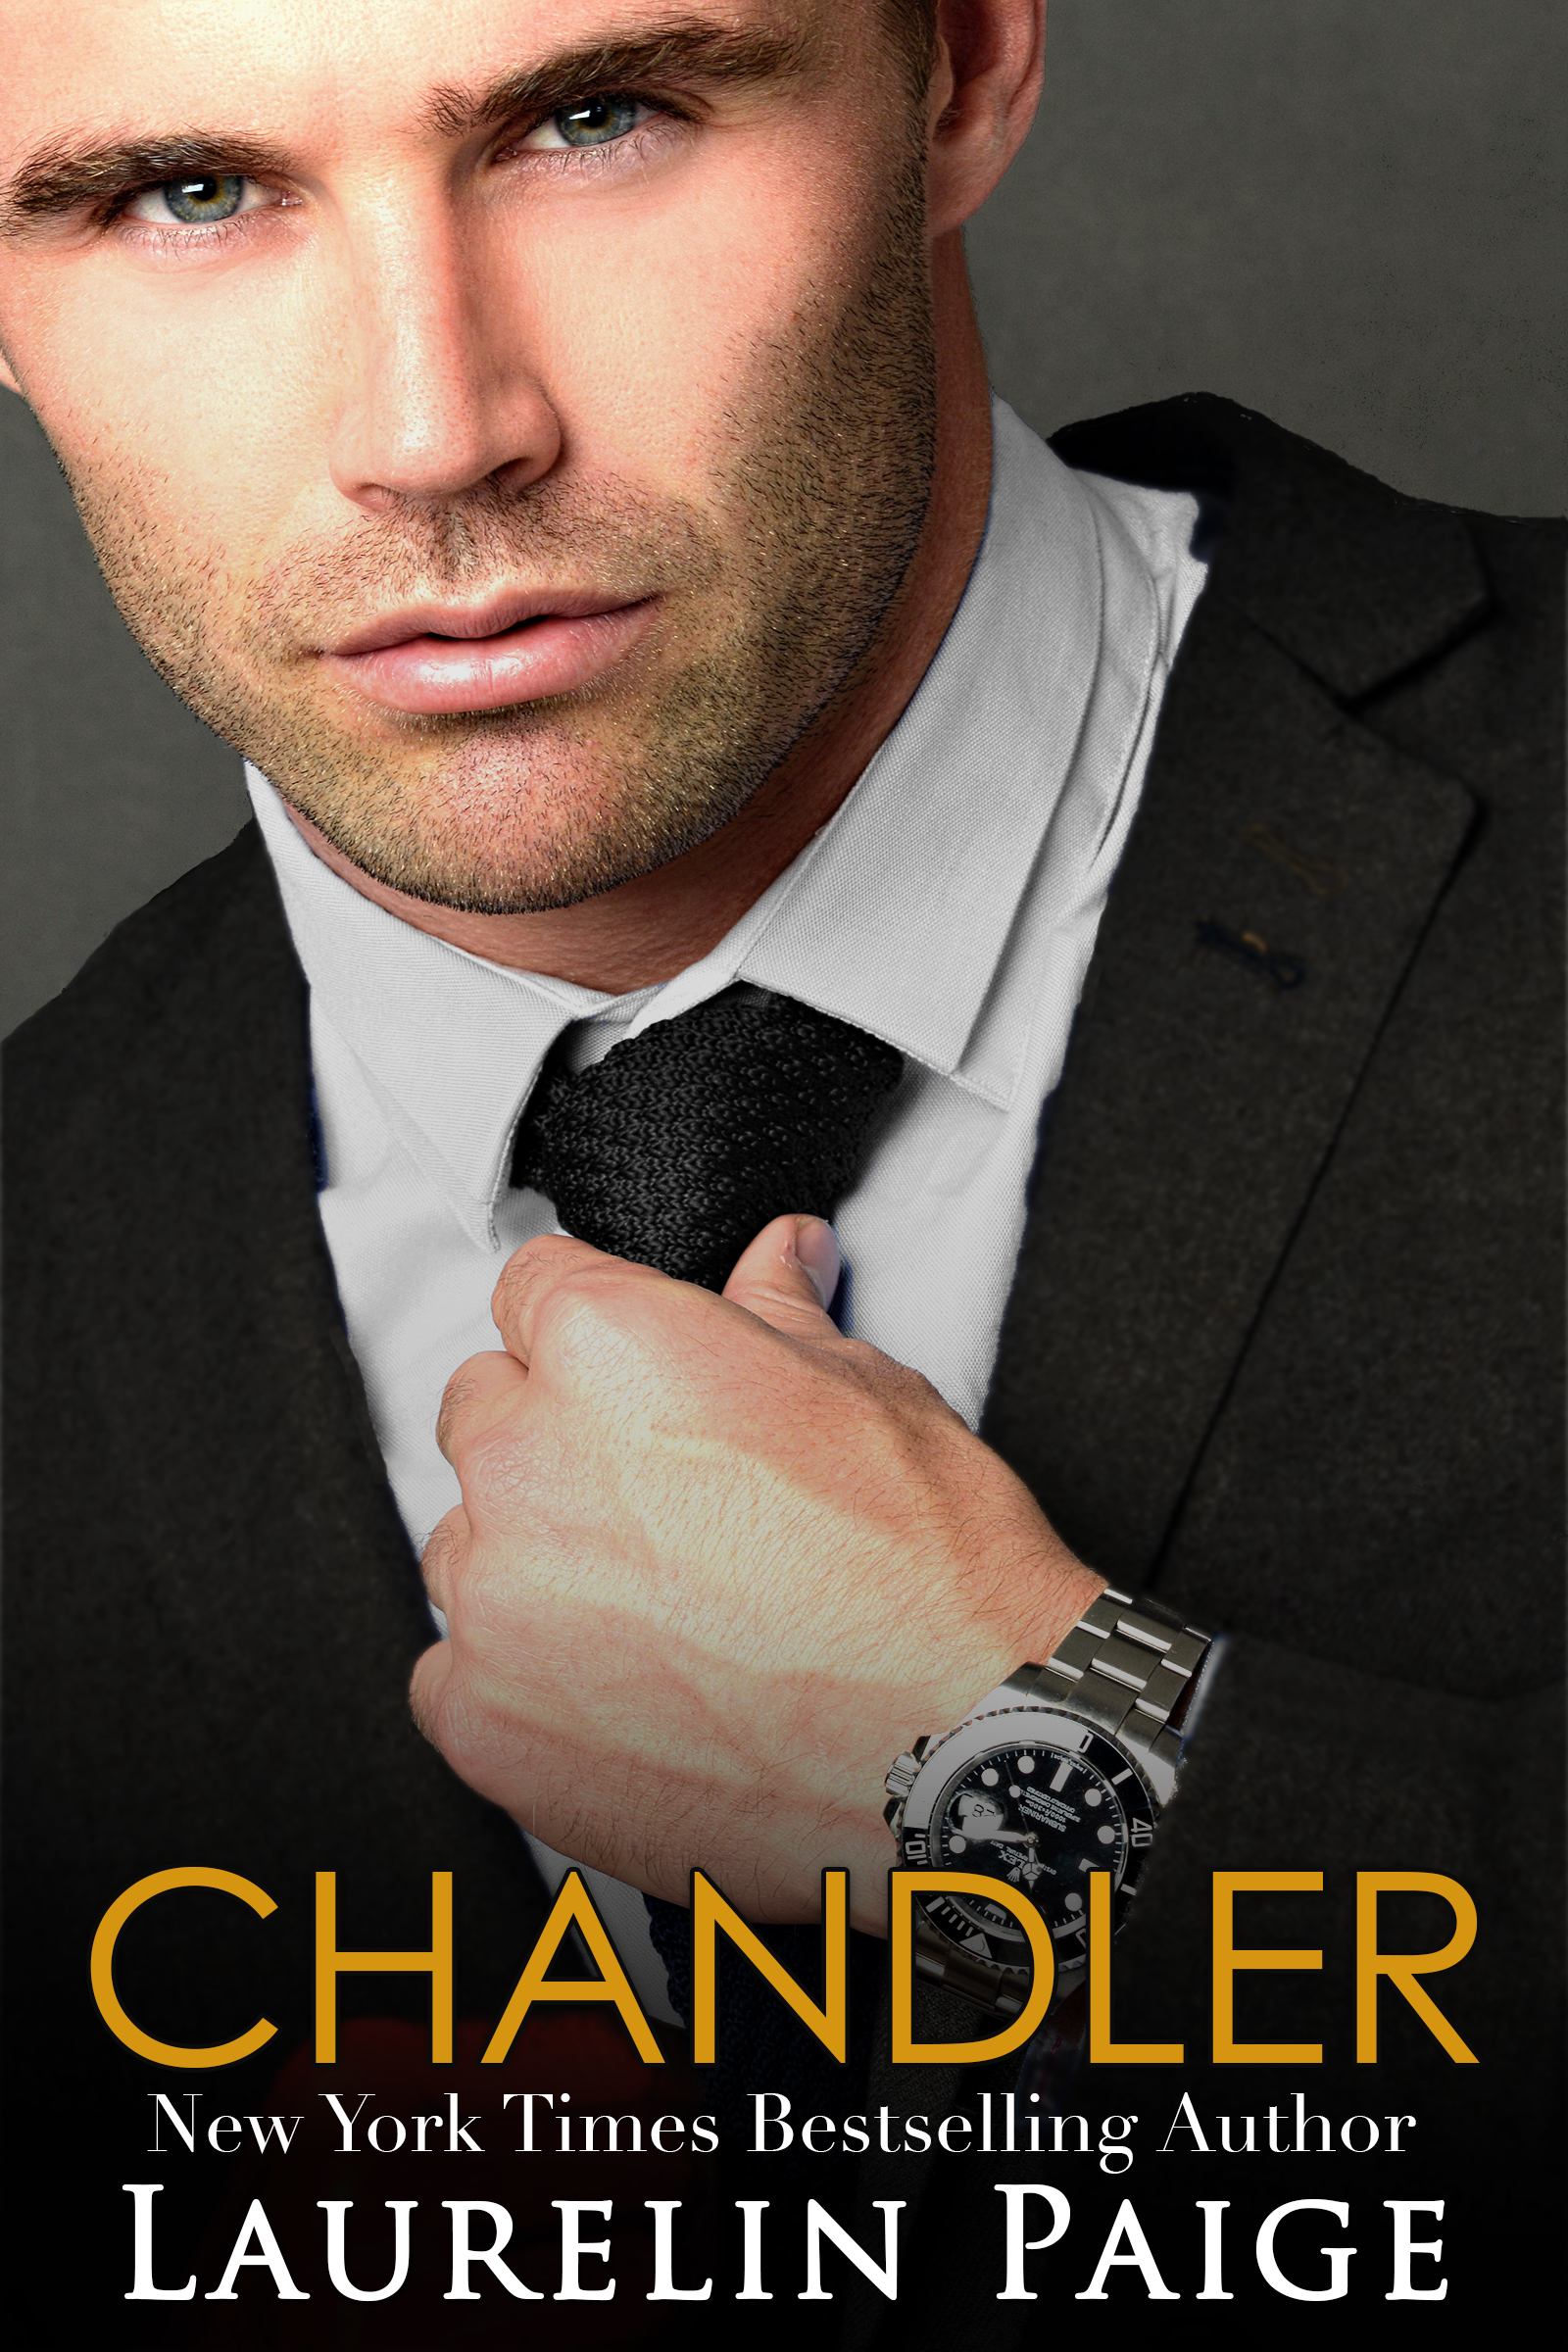 The KINK Report: Chandler by Laurelin Paige Book Release